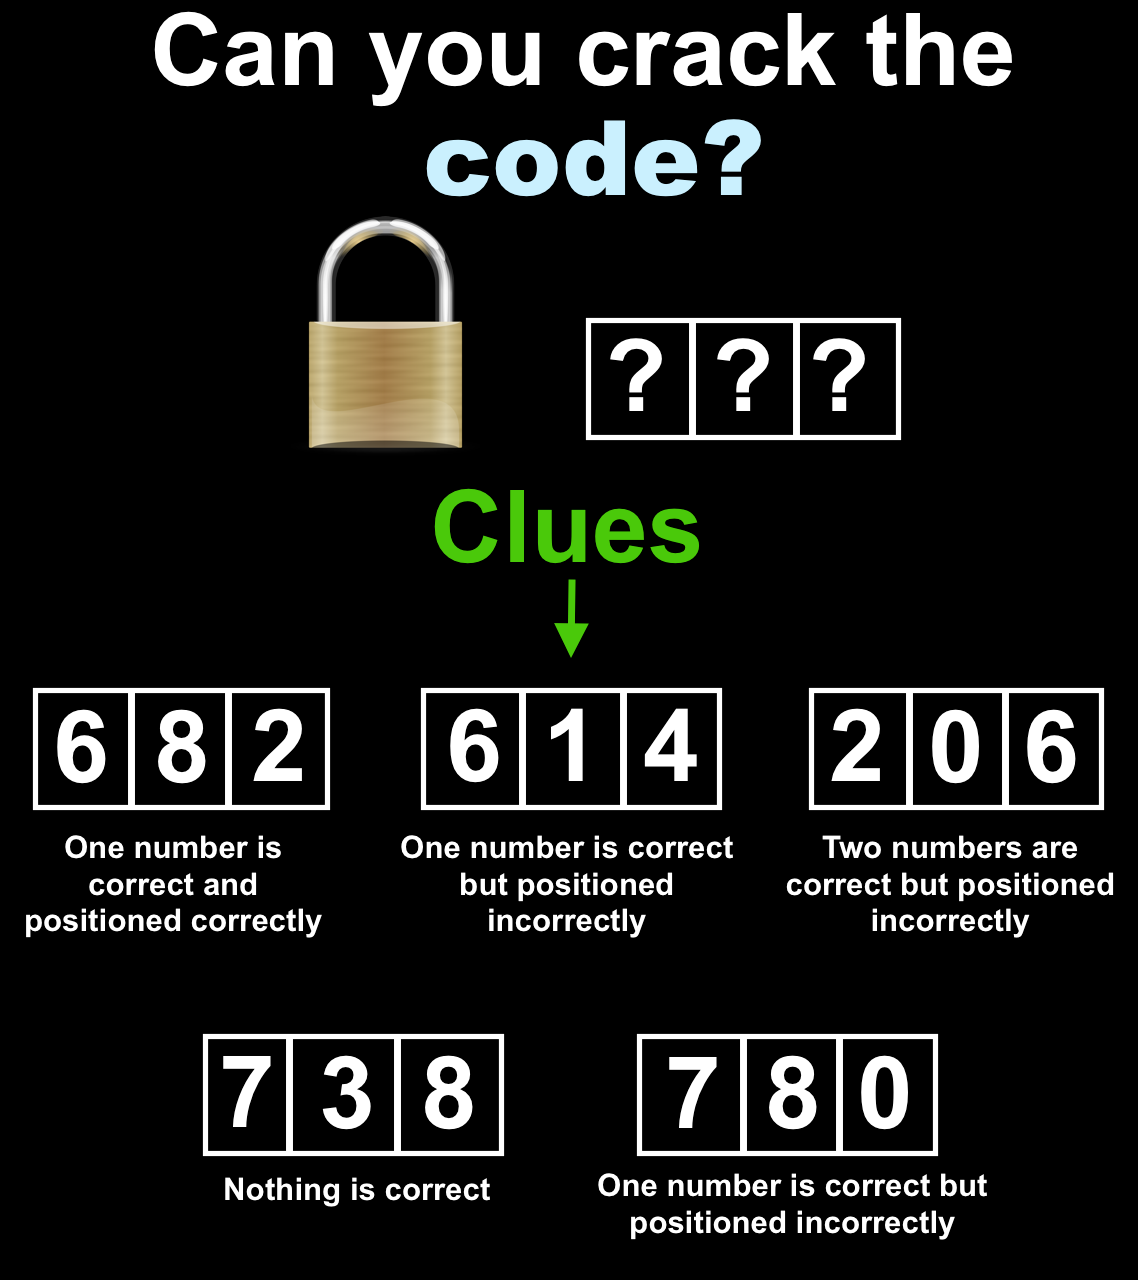 can you crack the code 682